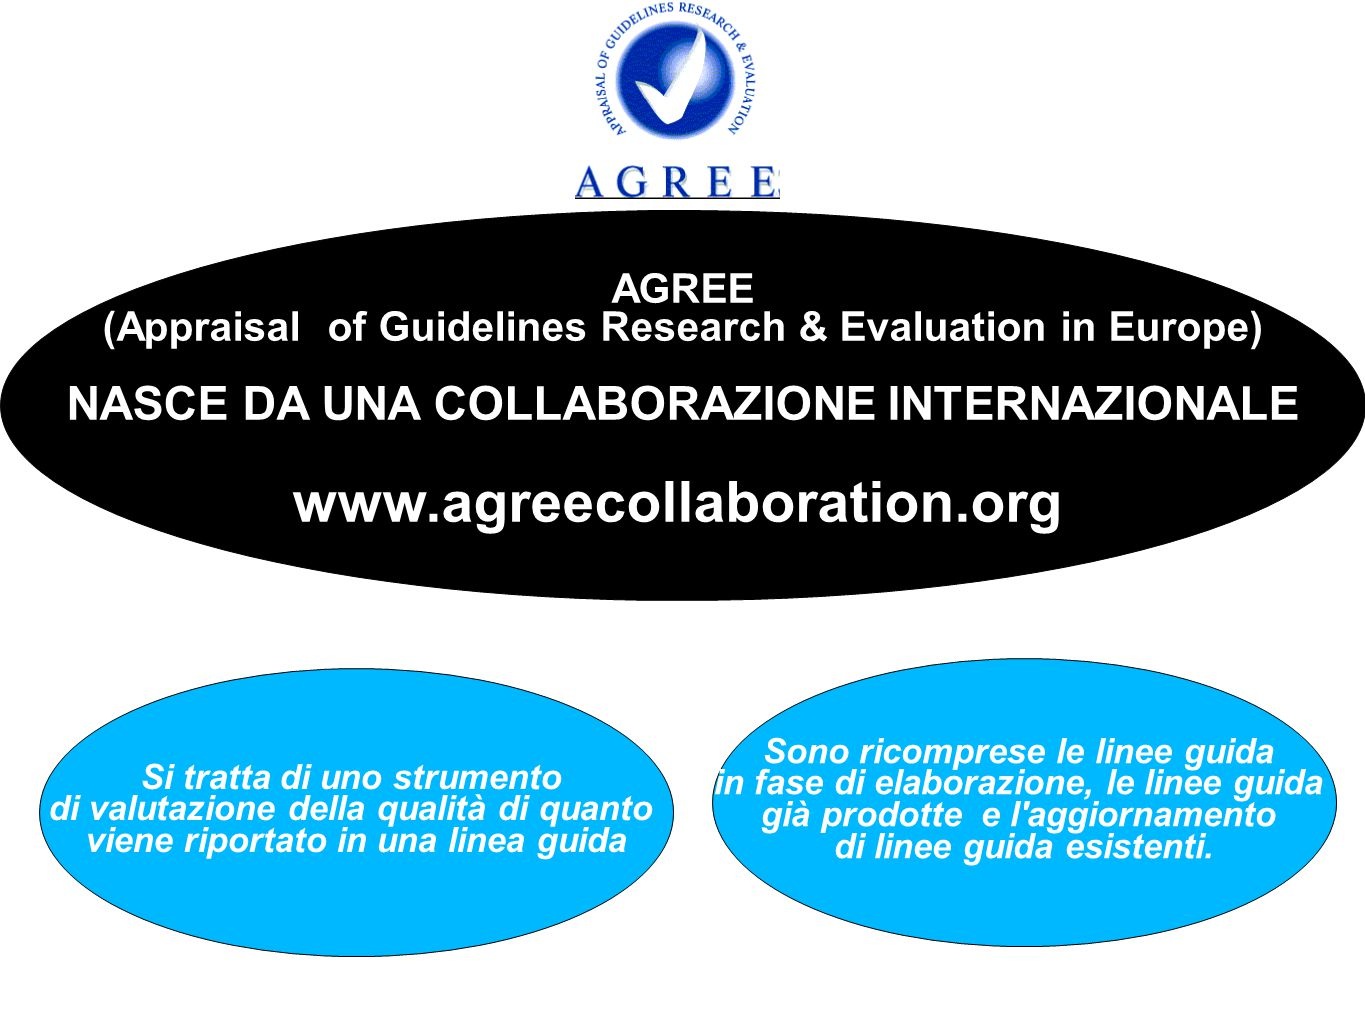 AGREE (Appraisal of Guidelines Research & Evaluation in Europe) NASCE DA UNA COLLABORAZIONE INTERNAZIONALE /www.agreecollaboration.org/ Sono ricompres